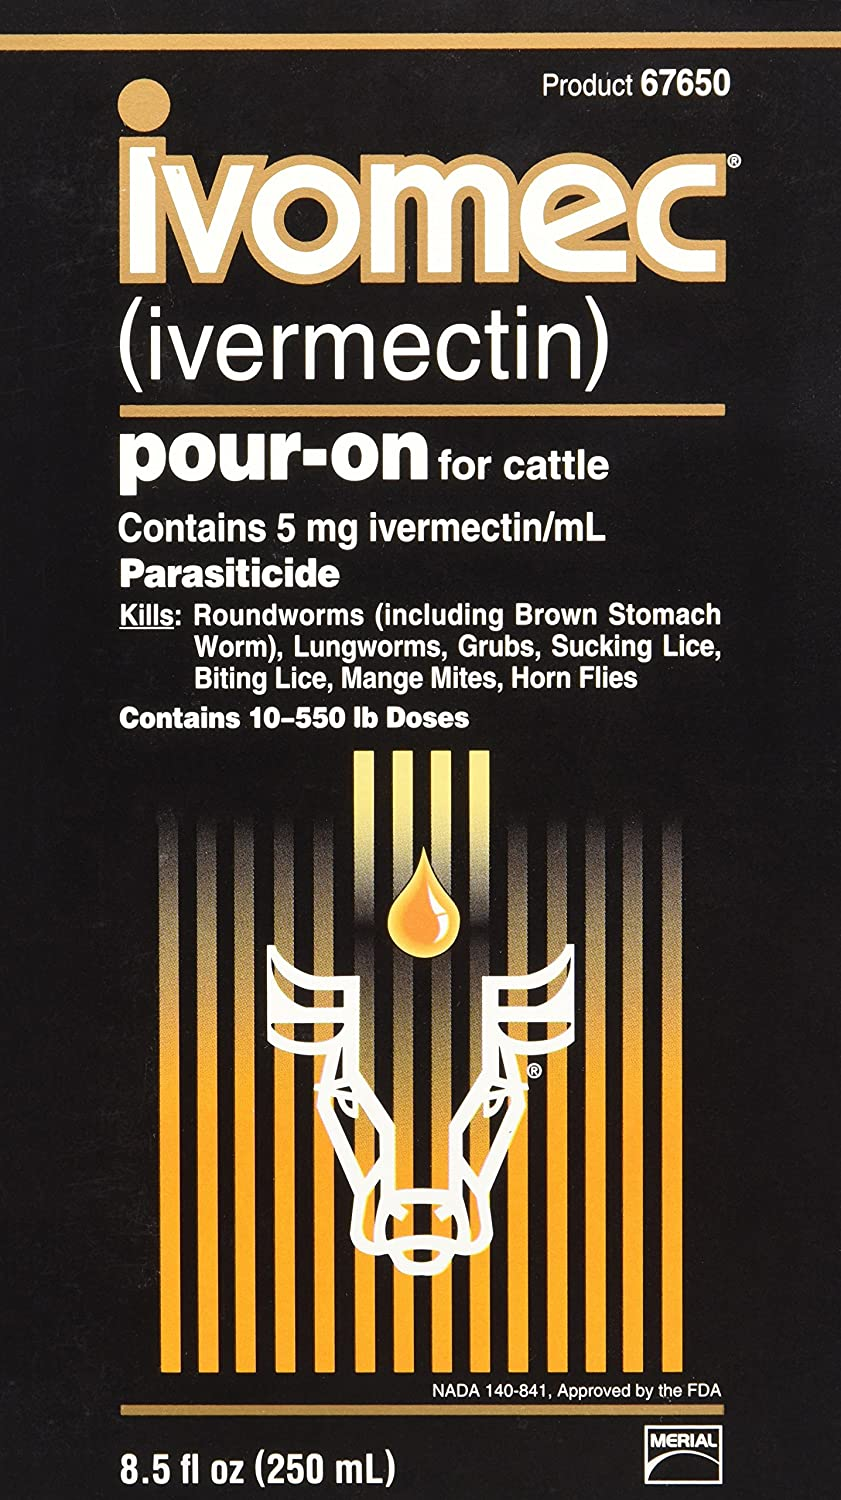 047894 Ivomec Parasiticide Pour-on for Cattle, 250Ml Prime Pet Deals - Code 1 67649